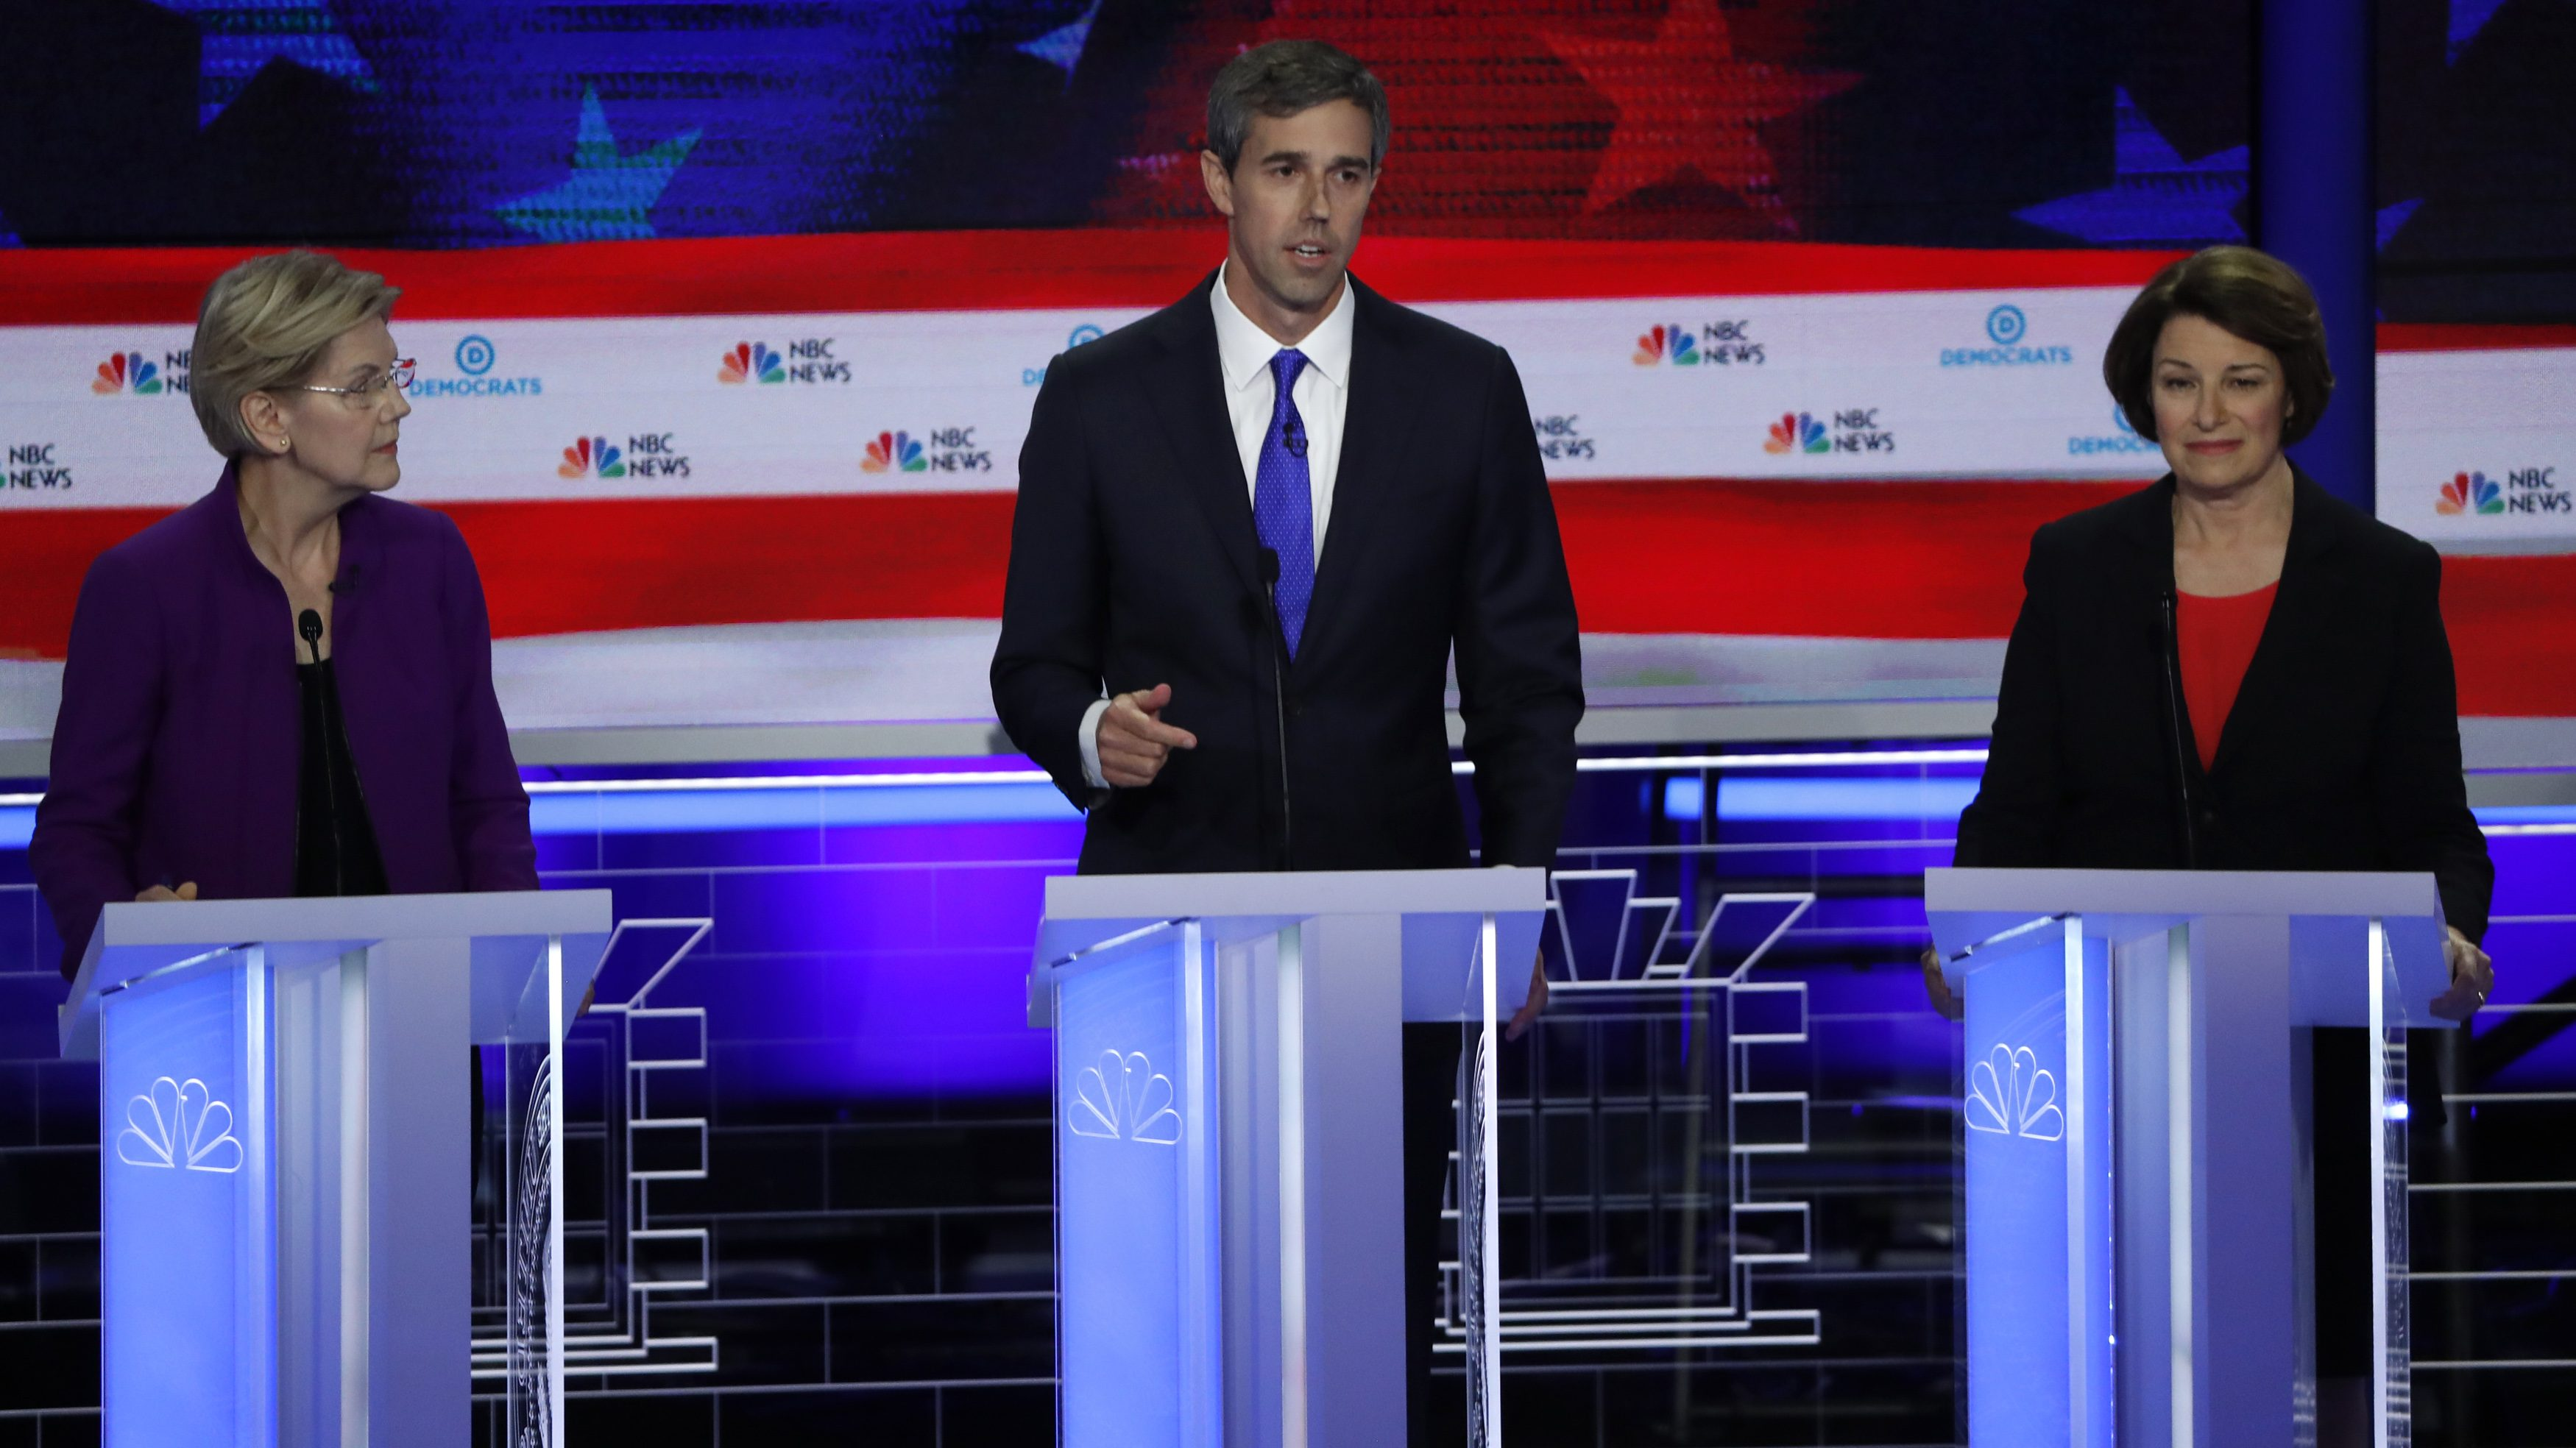 U.S. Rep. Beto O'Rourke speaks at the first U.S. 2020 presidential election Democratic candidates debate in Miami, Florida, U.S.,